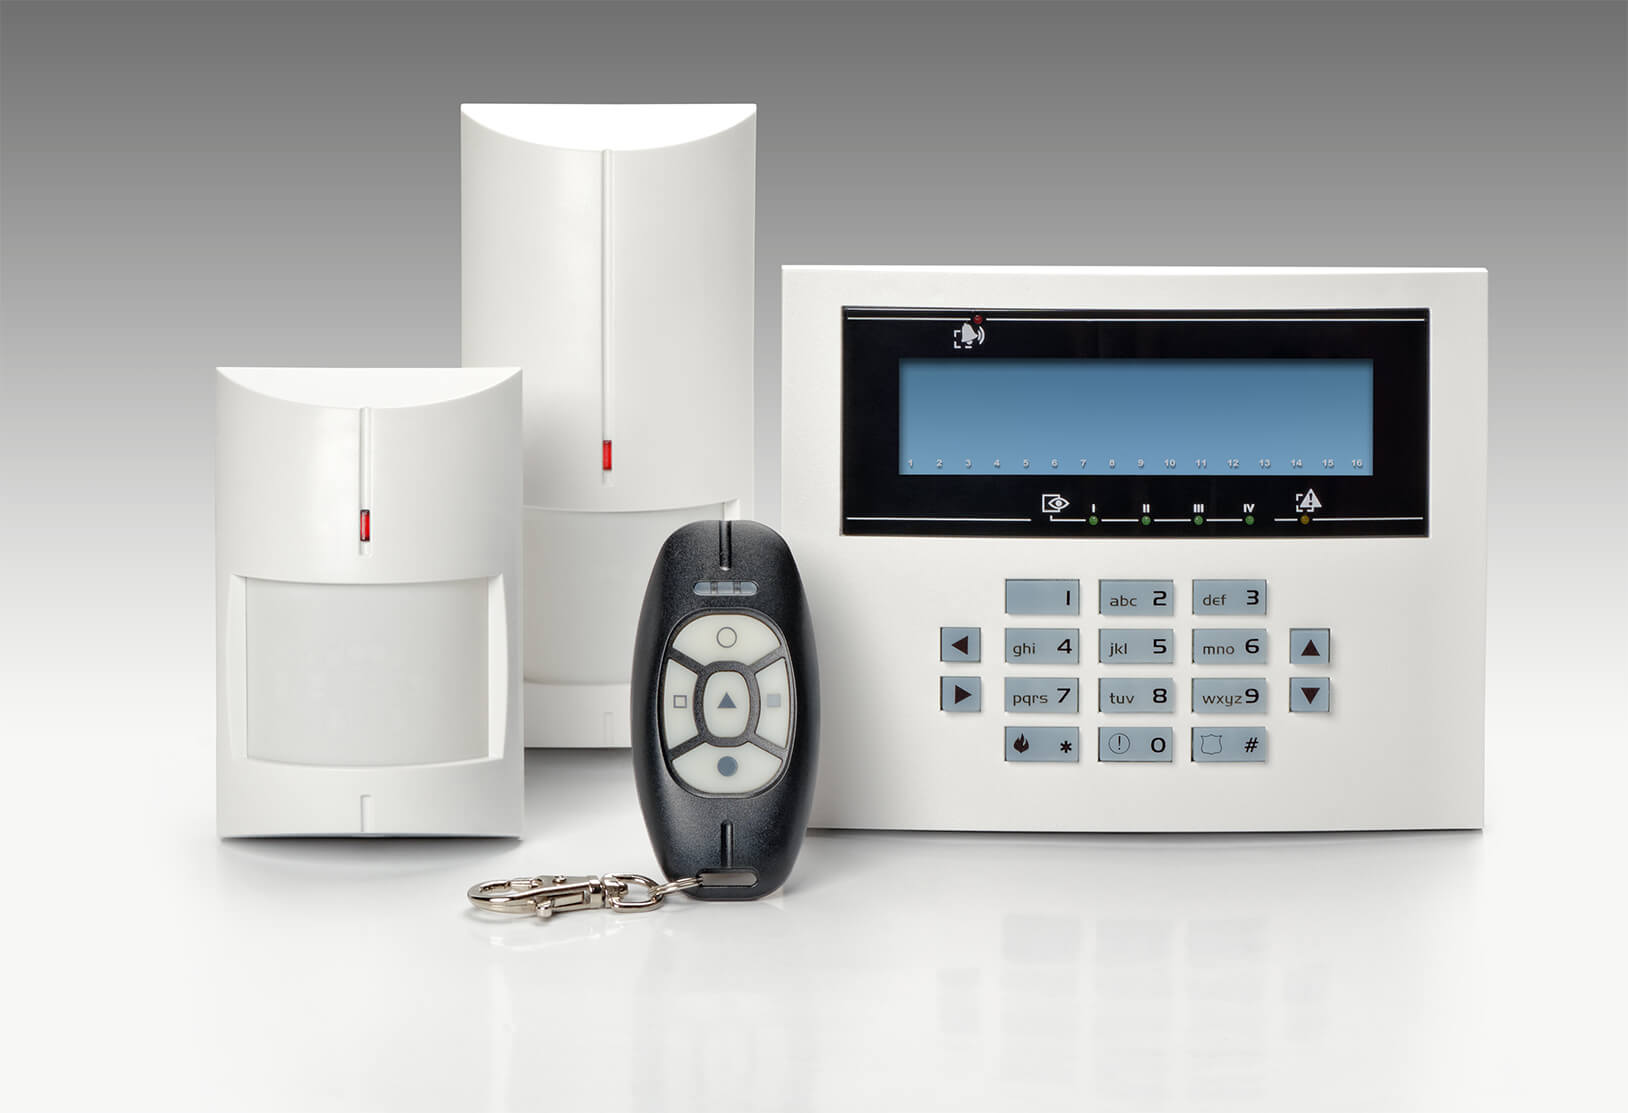 Business & Residential NACOSS Approved Burglar Alarms In North London - Local North London security company.Call 02078872244 - Dedicated to Safety & Security. Companies, shops and homes ..